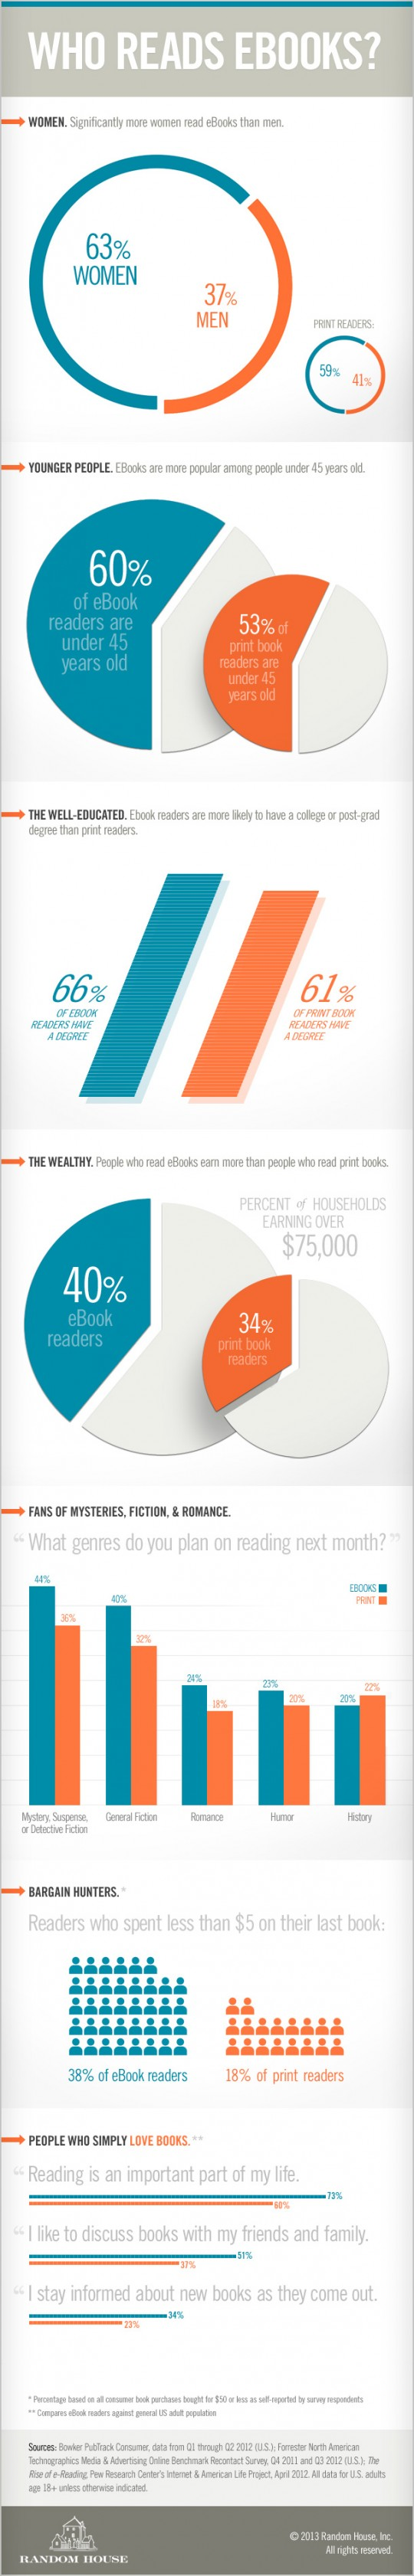 Who reads ebooks infographic by Random House